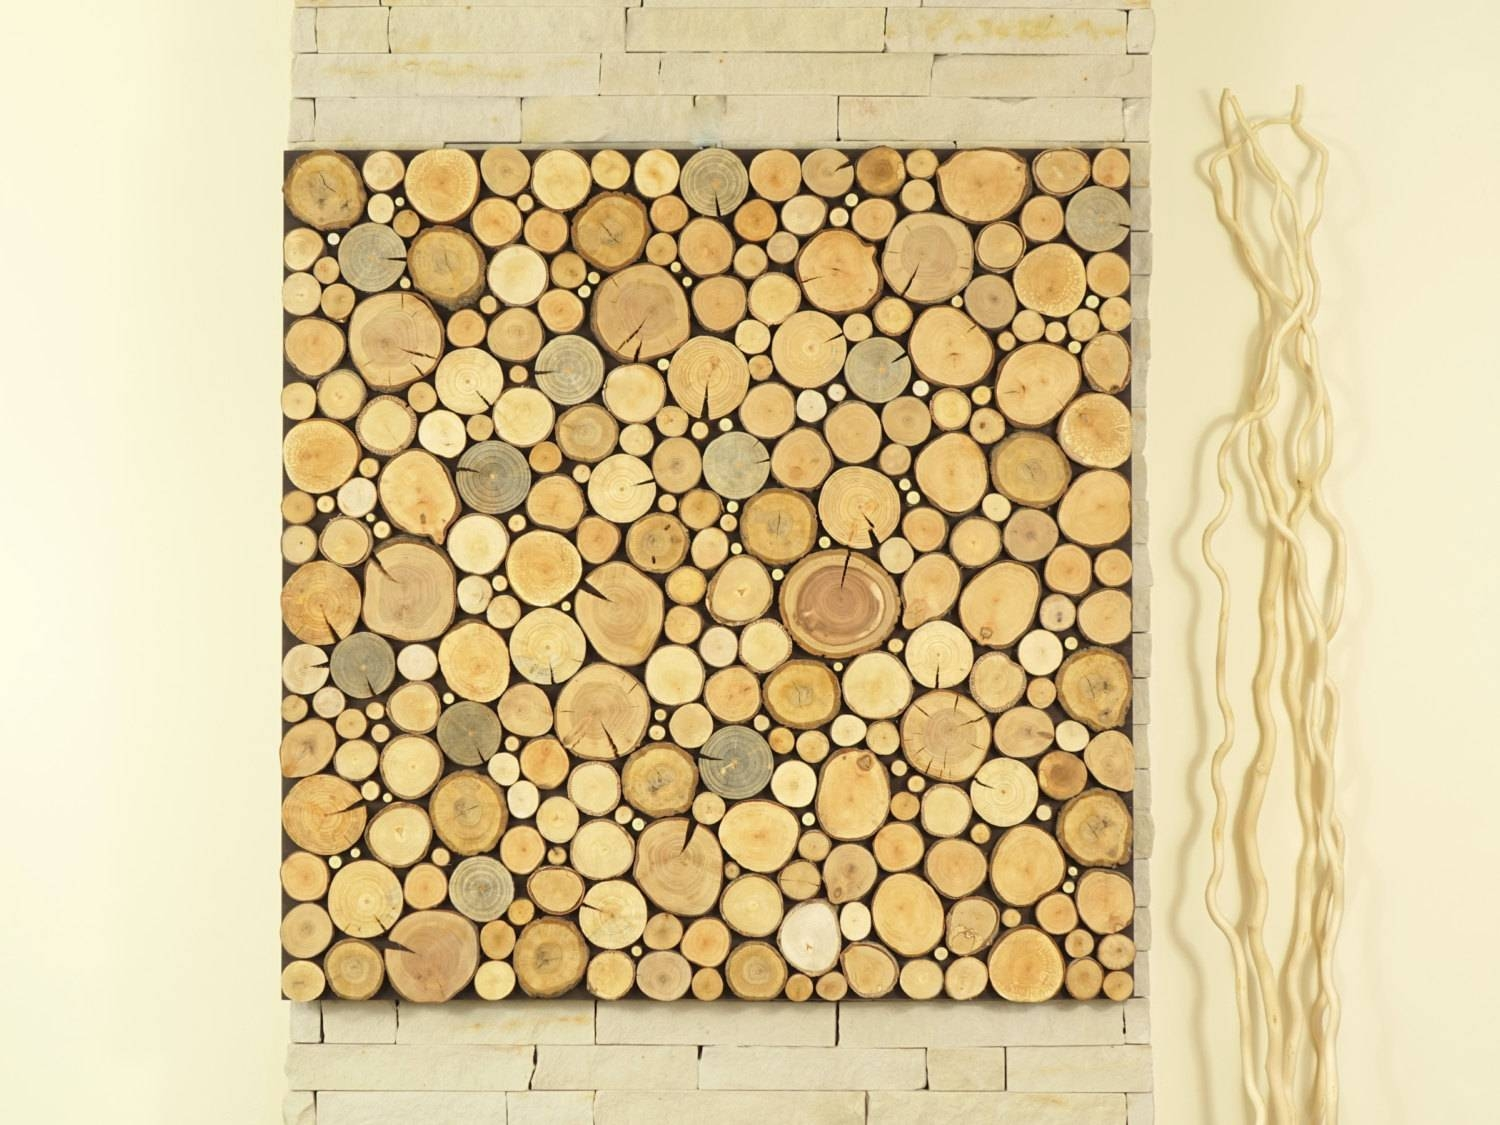 Modern Wall Art, Tree Slices Wall Panel, Sliced Wood Art, Wooden Regarding Most Popular Wooden Wall Art Panels (View 10 of 20)